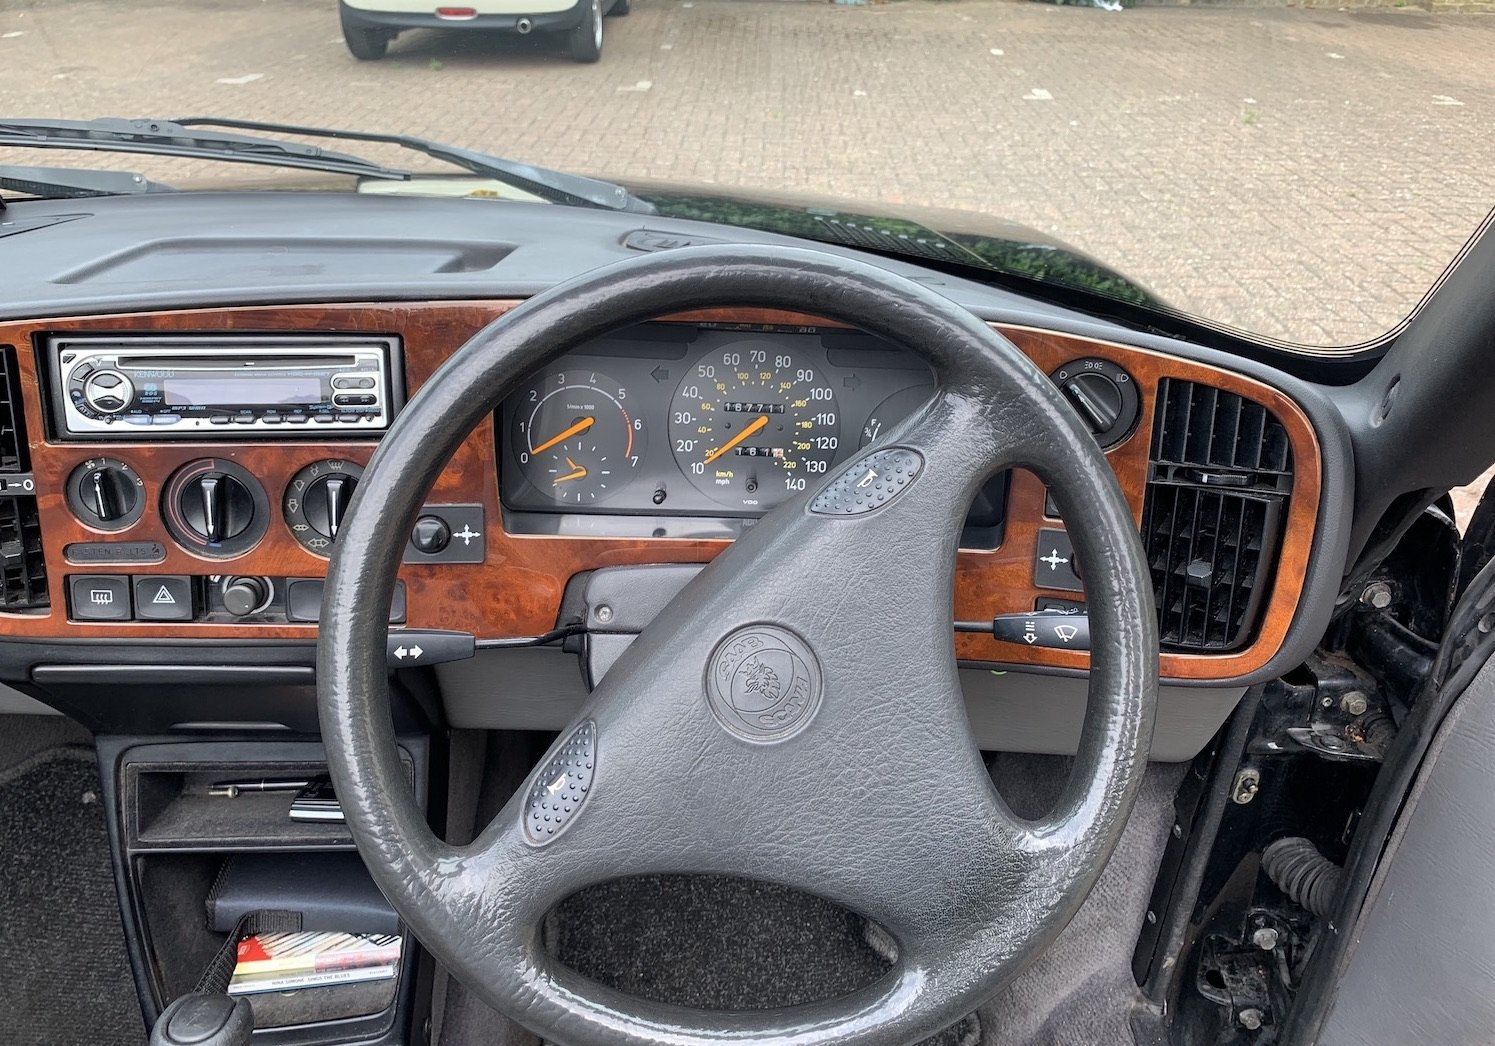 1992 Classic Saab 900i convertible in superb condition For Sale (picture 6 of 6)